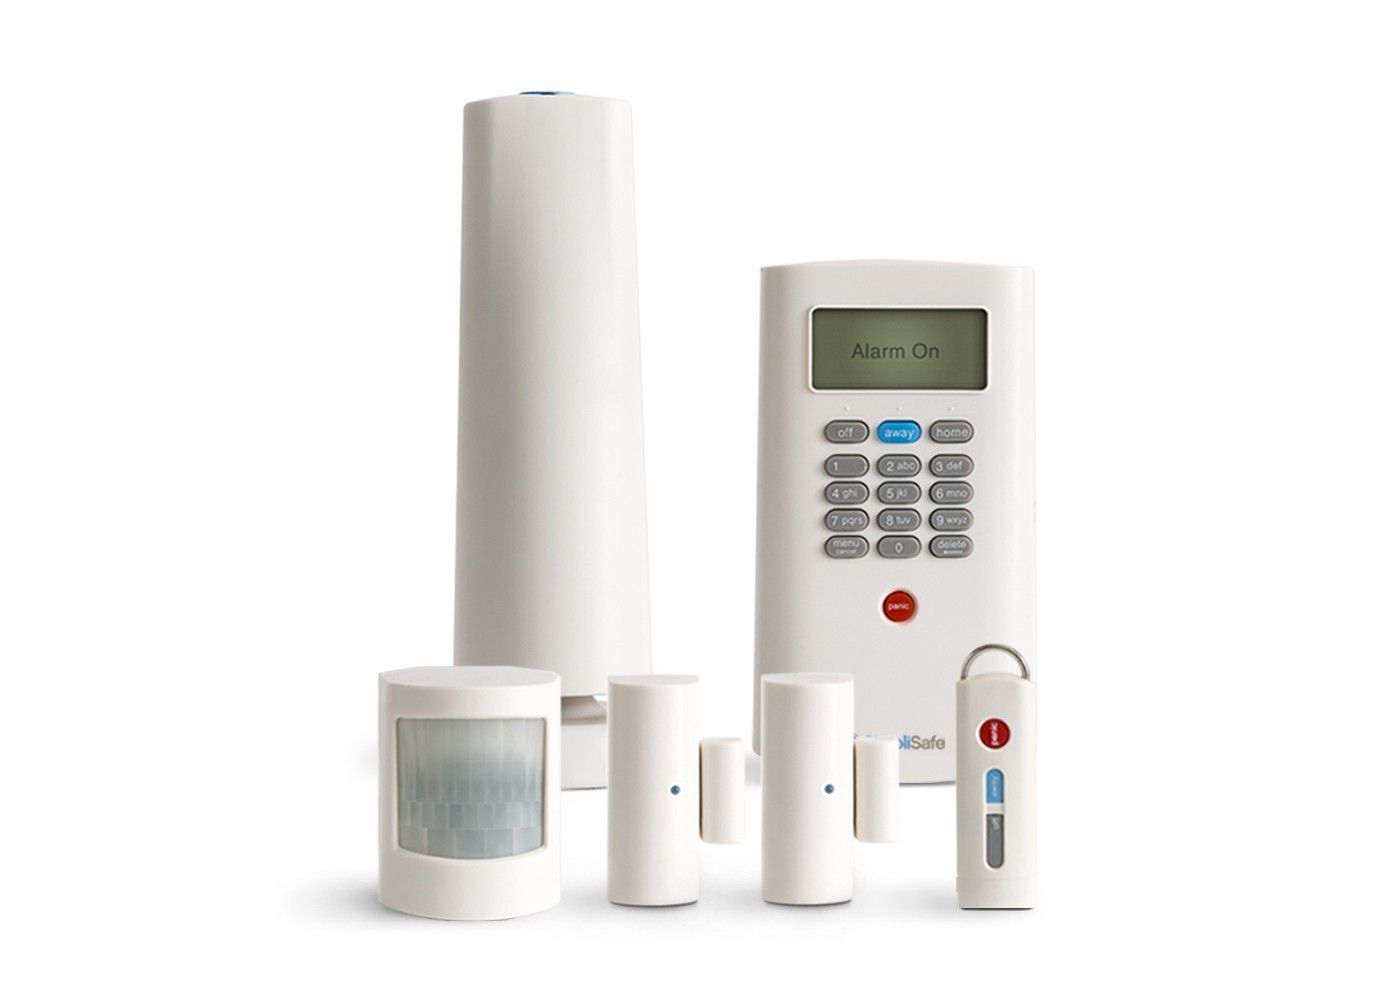 Home Security System SimpliSafe image 1 of 5 Wireless